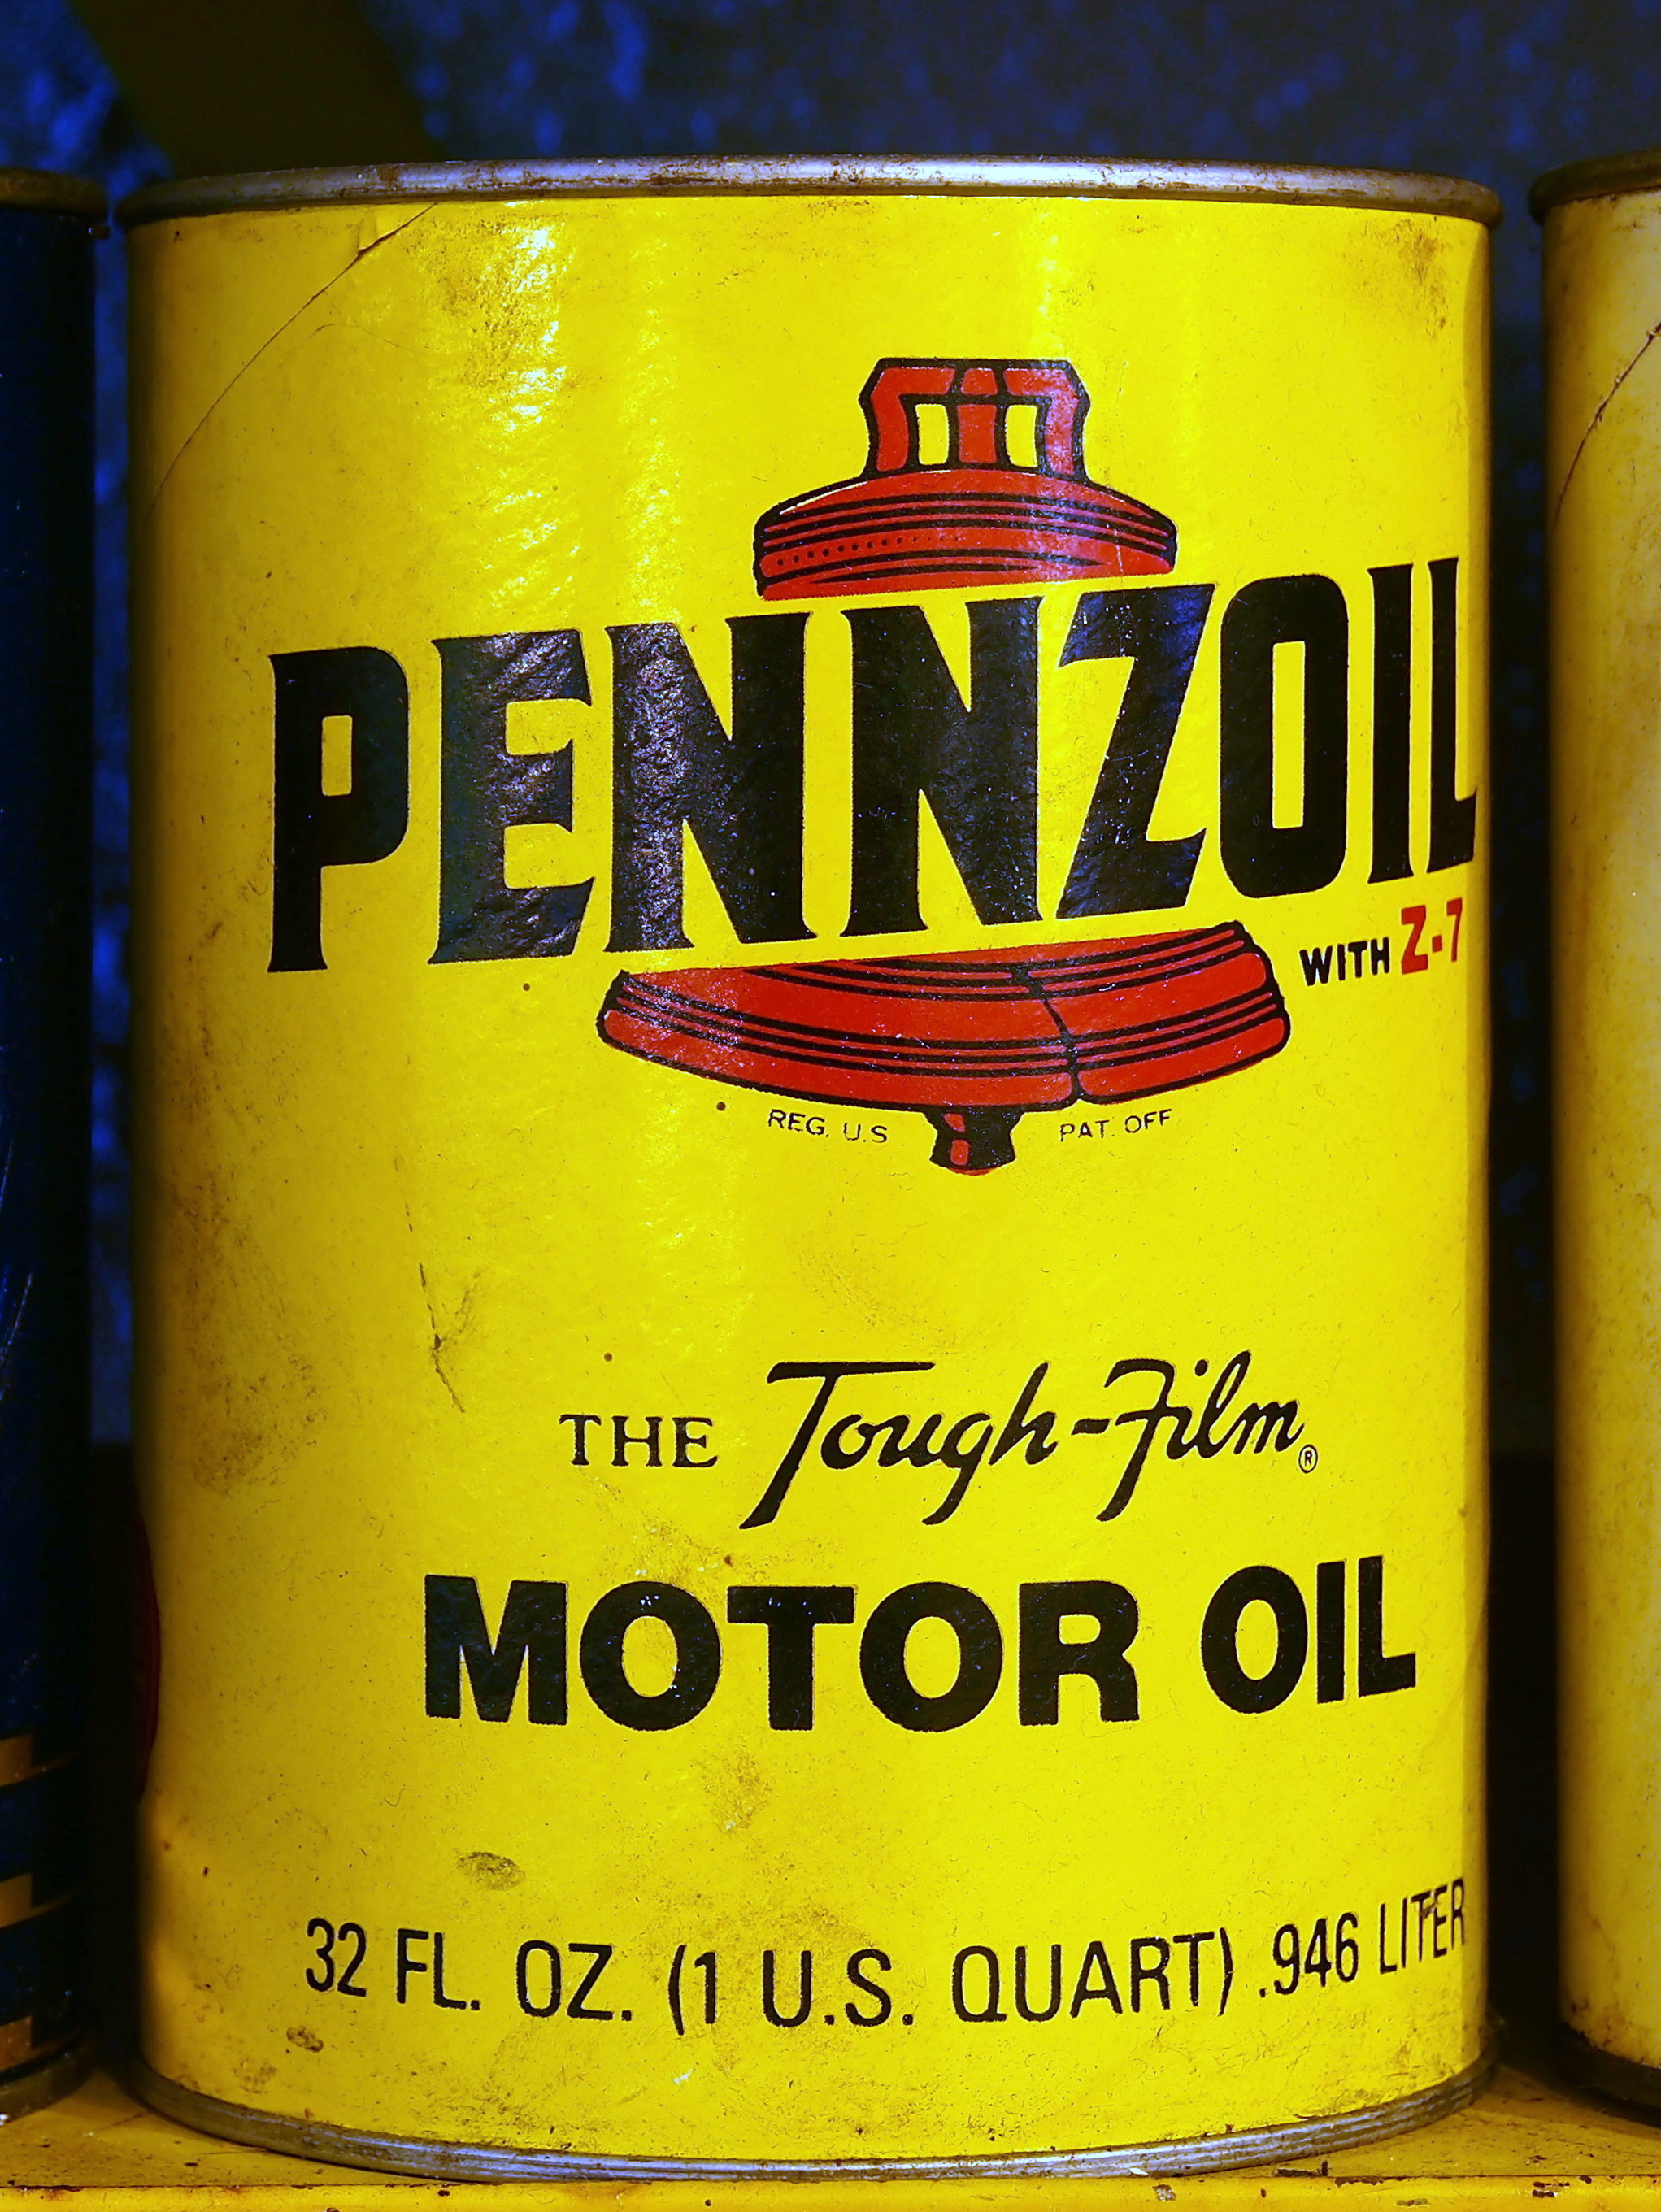 Pennzoil_motor_oil_can.JPG